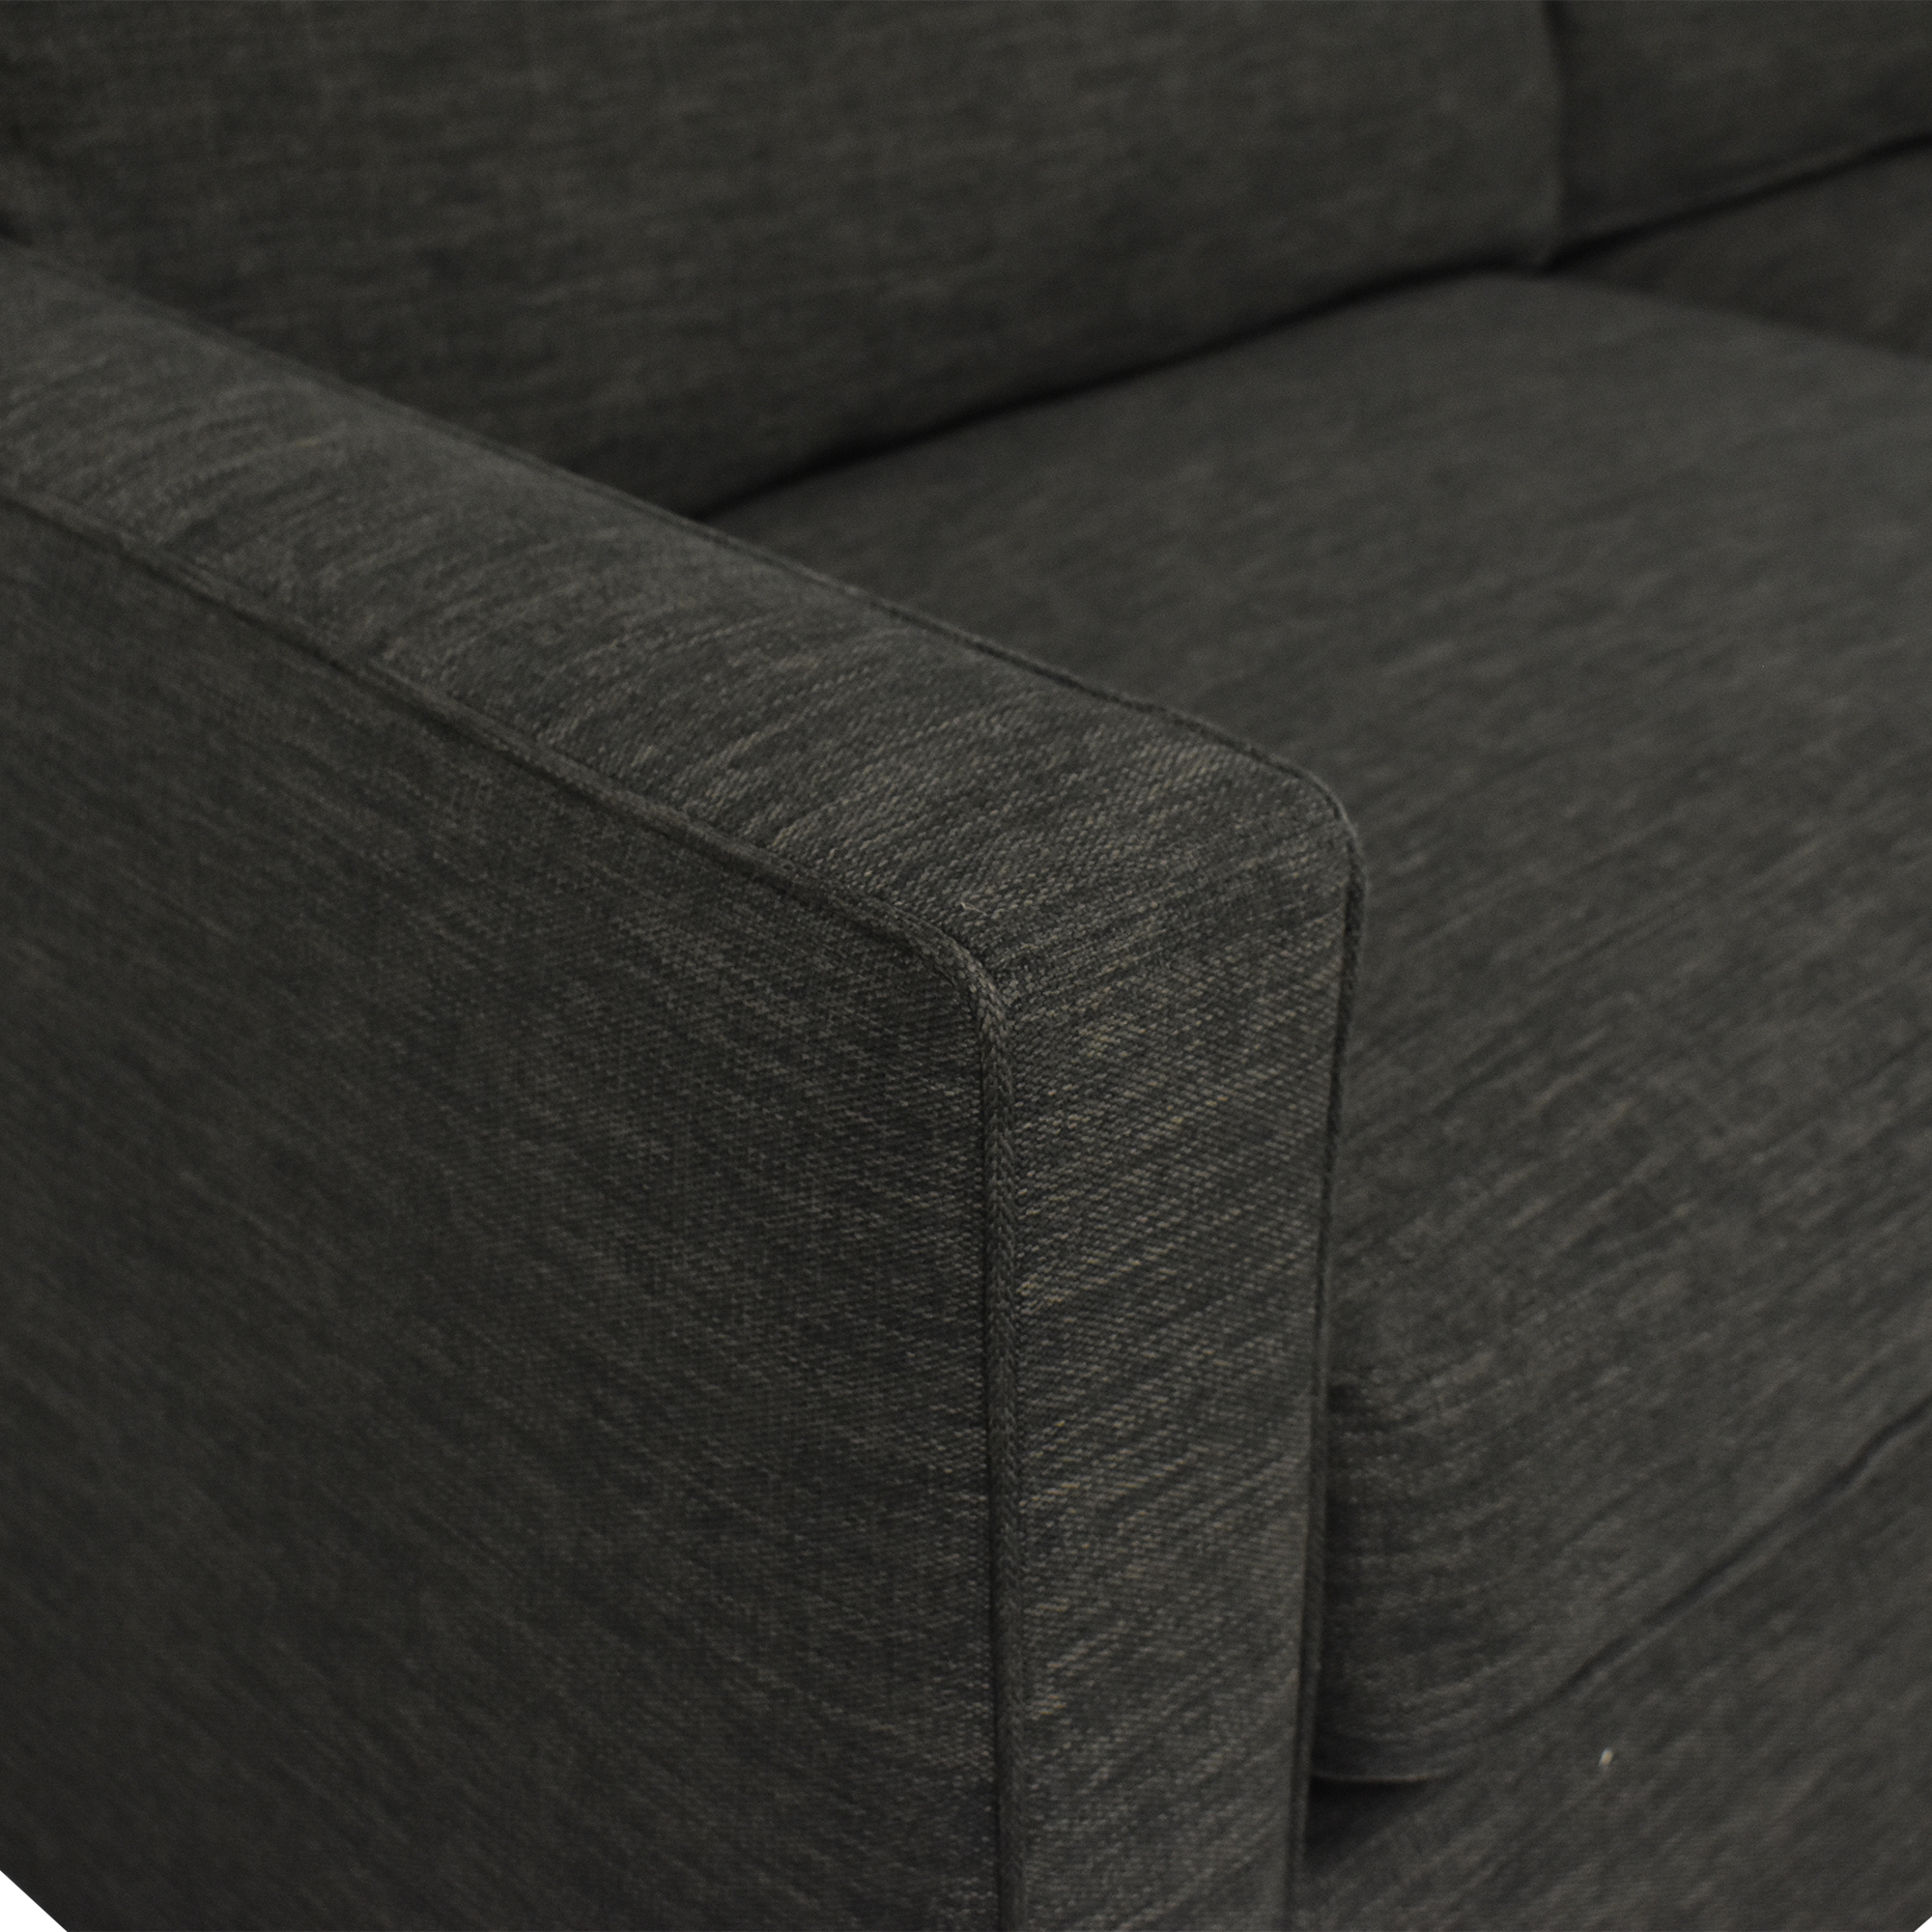 Crate & Barrel Crate & Barrel Davis Two Seat Sofa pa